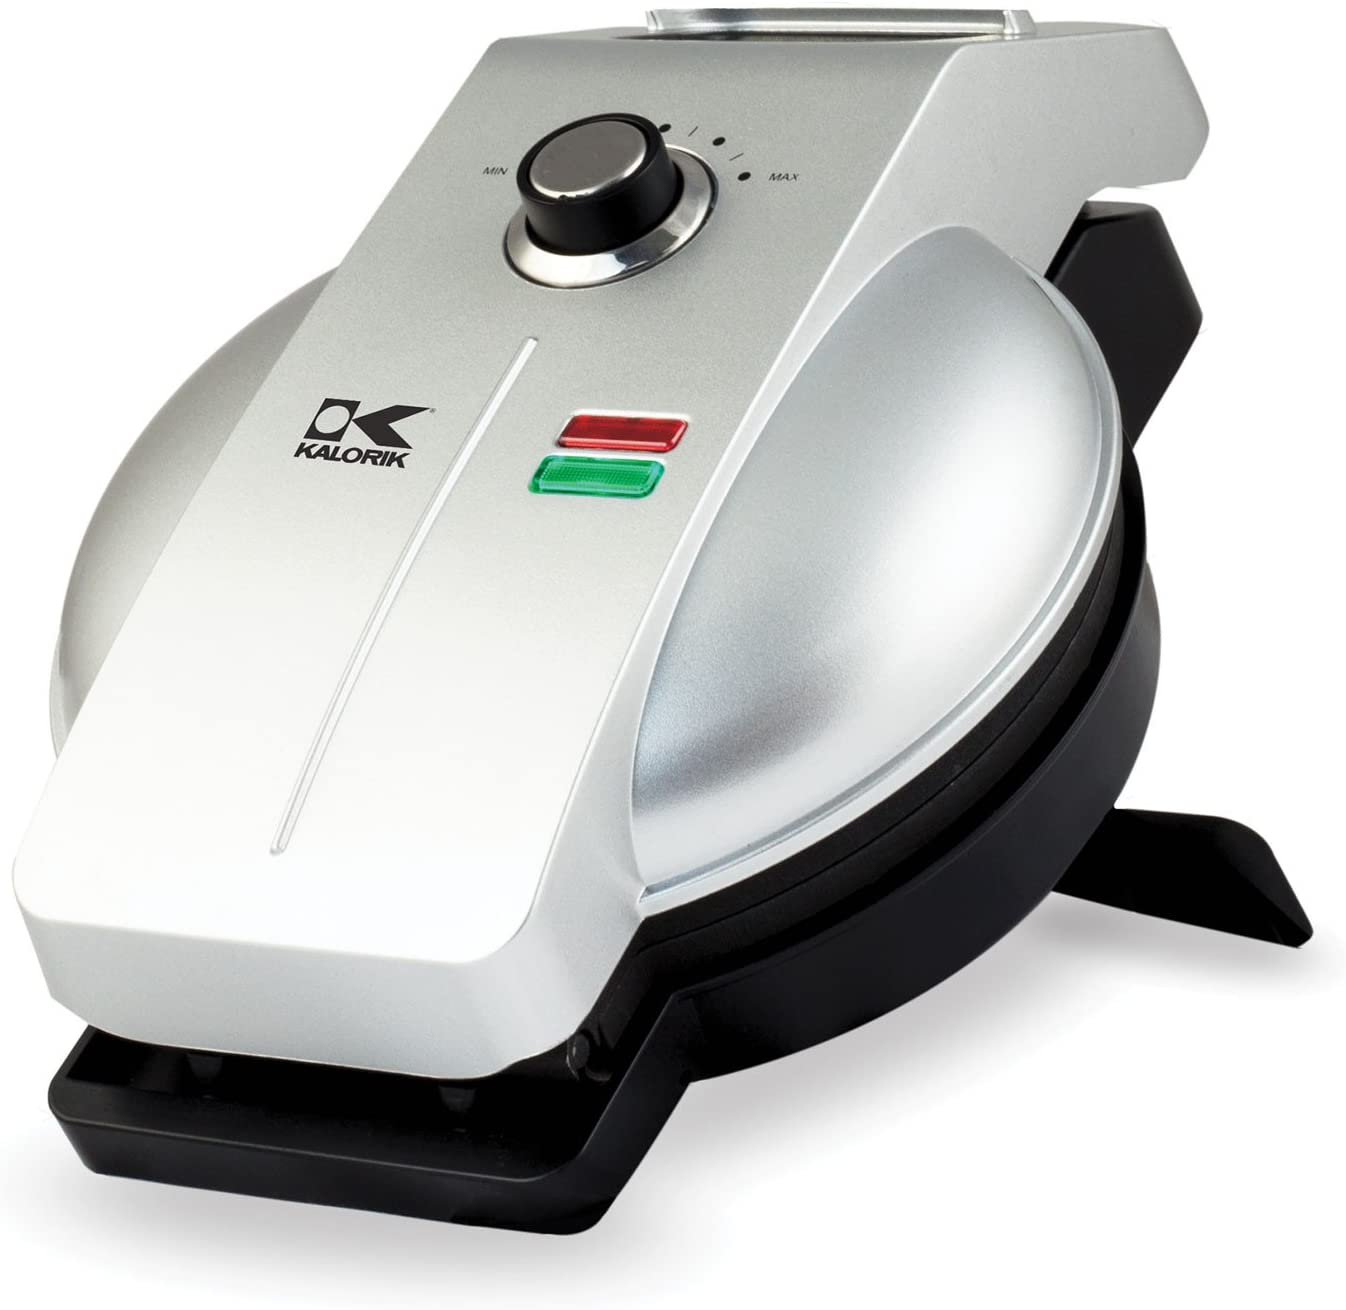 Kalorik Easy Pour Waffle Maker, WM 43981 SS, Mess & Stress Free GIA Award Winning Waffle Iron, Measuring Cup Included, Stainless